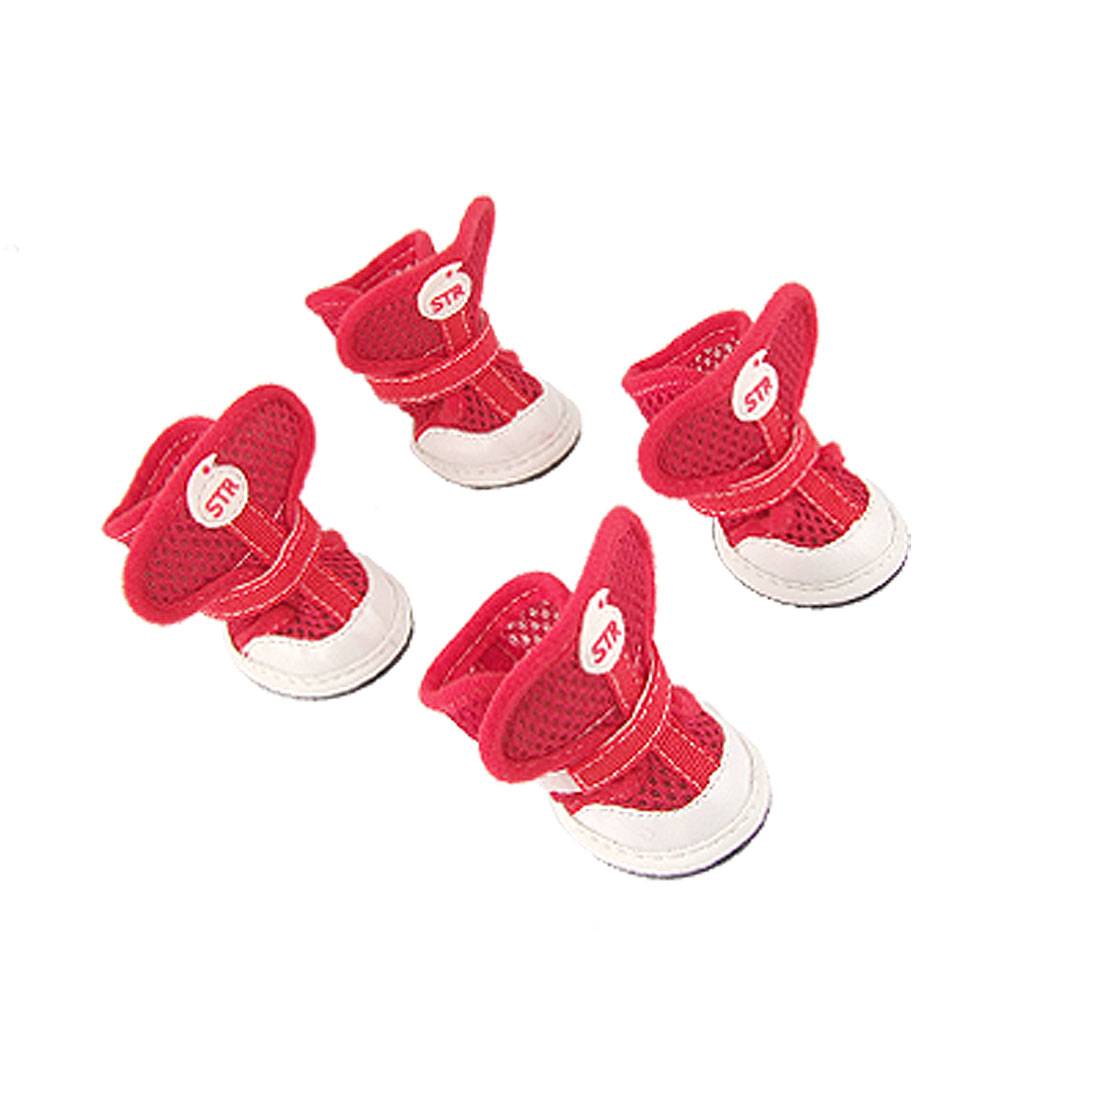 Nonslip Rubber Sole Adjustable Air Mesh RedShoes for Dog 1